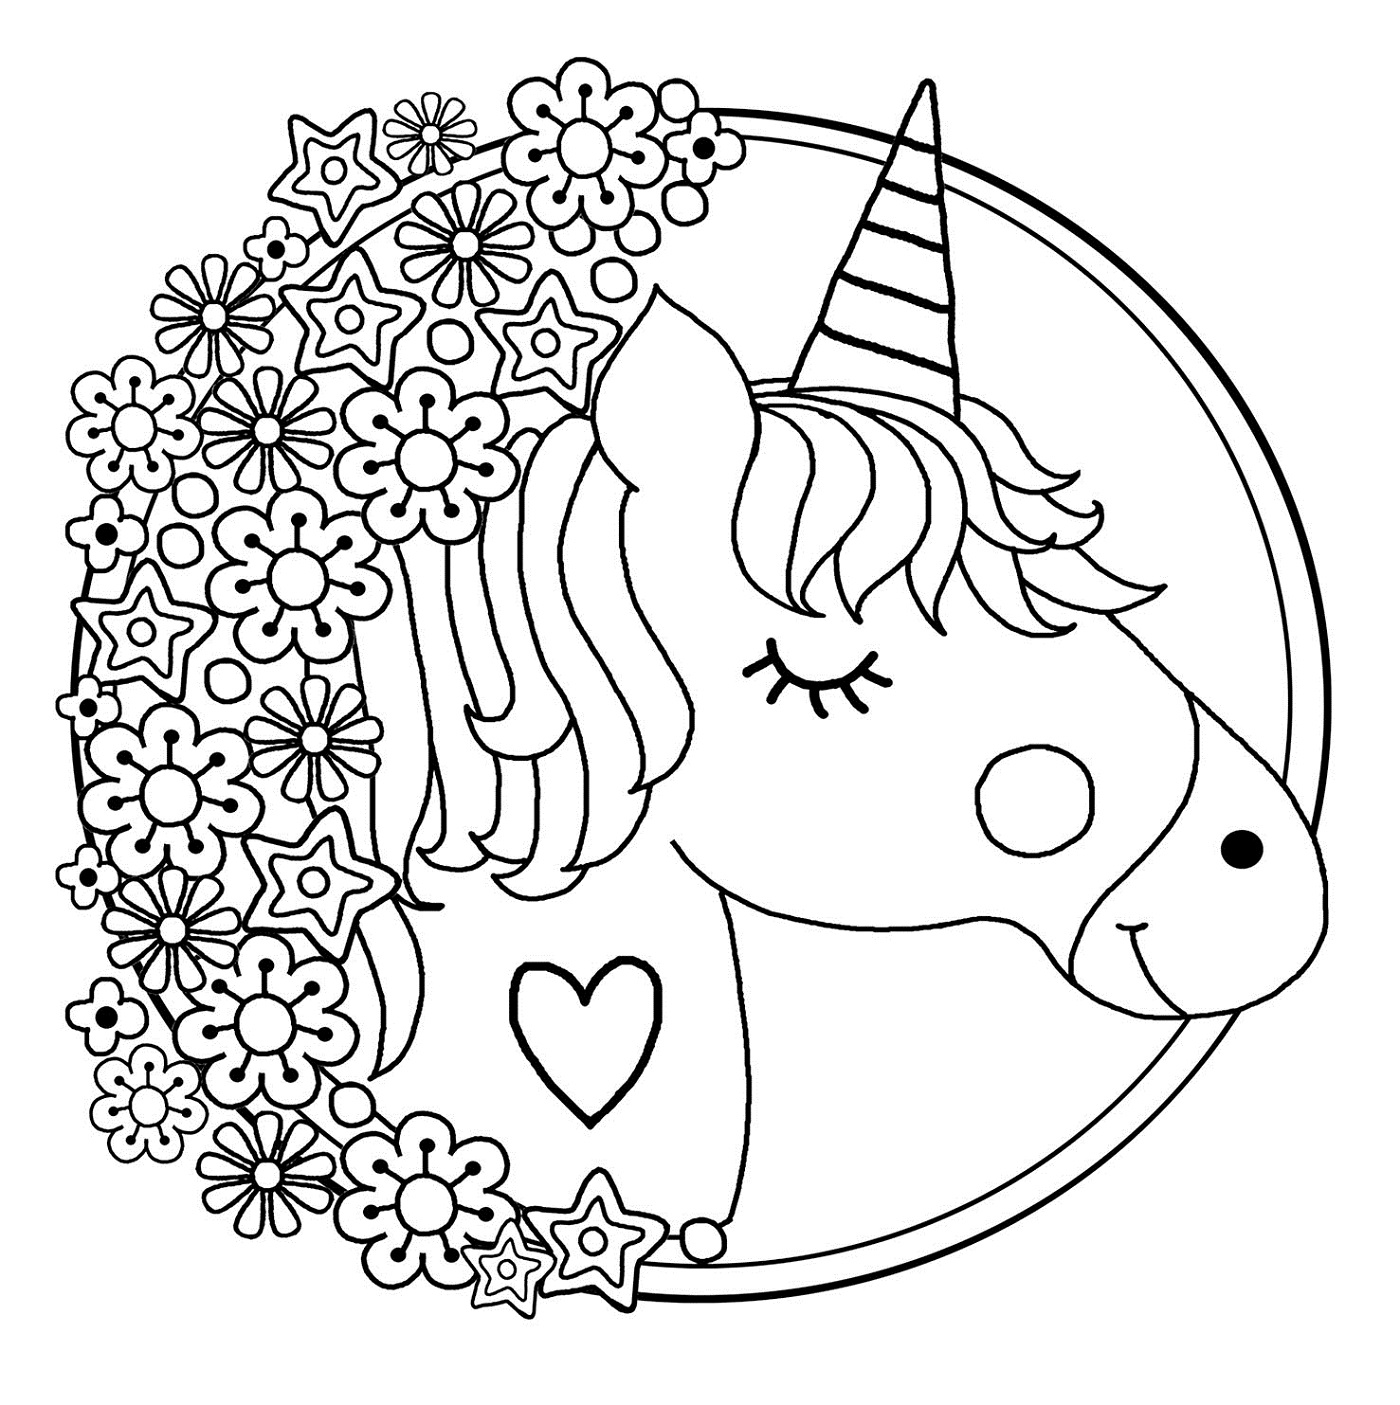 unicorn color pages for children